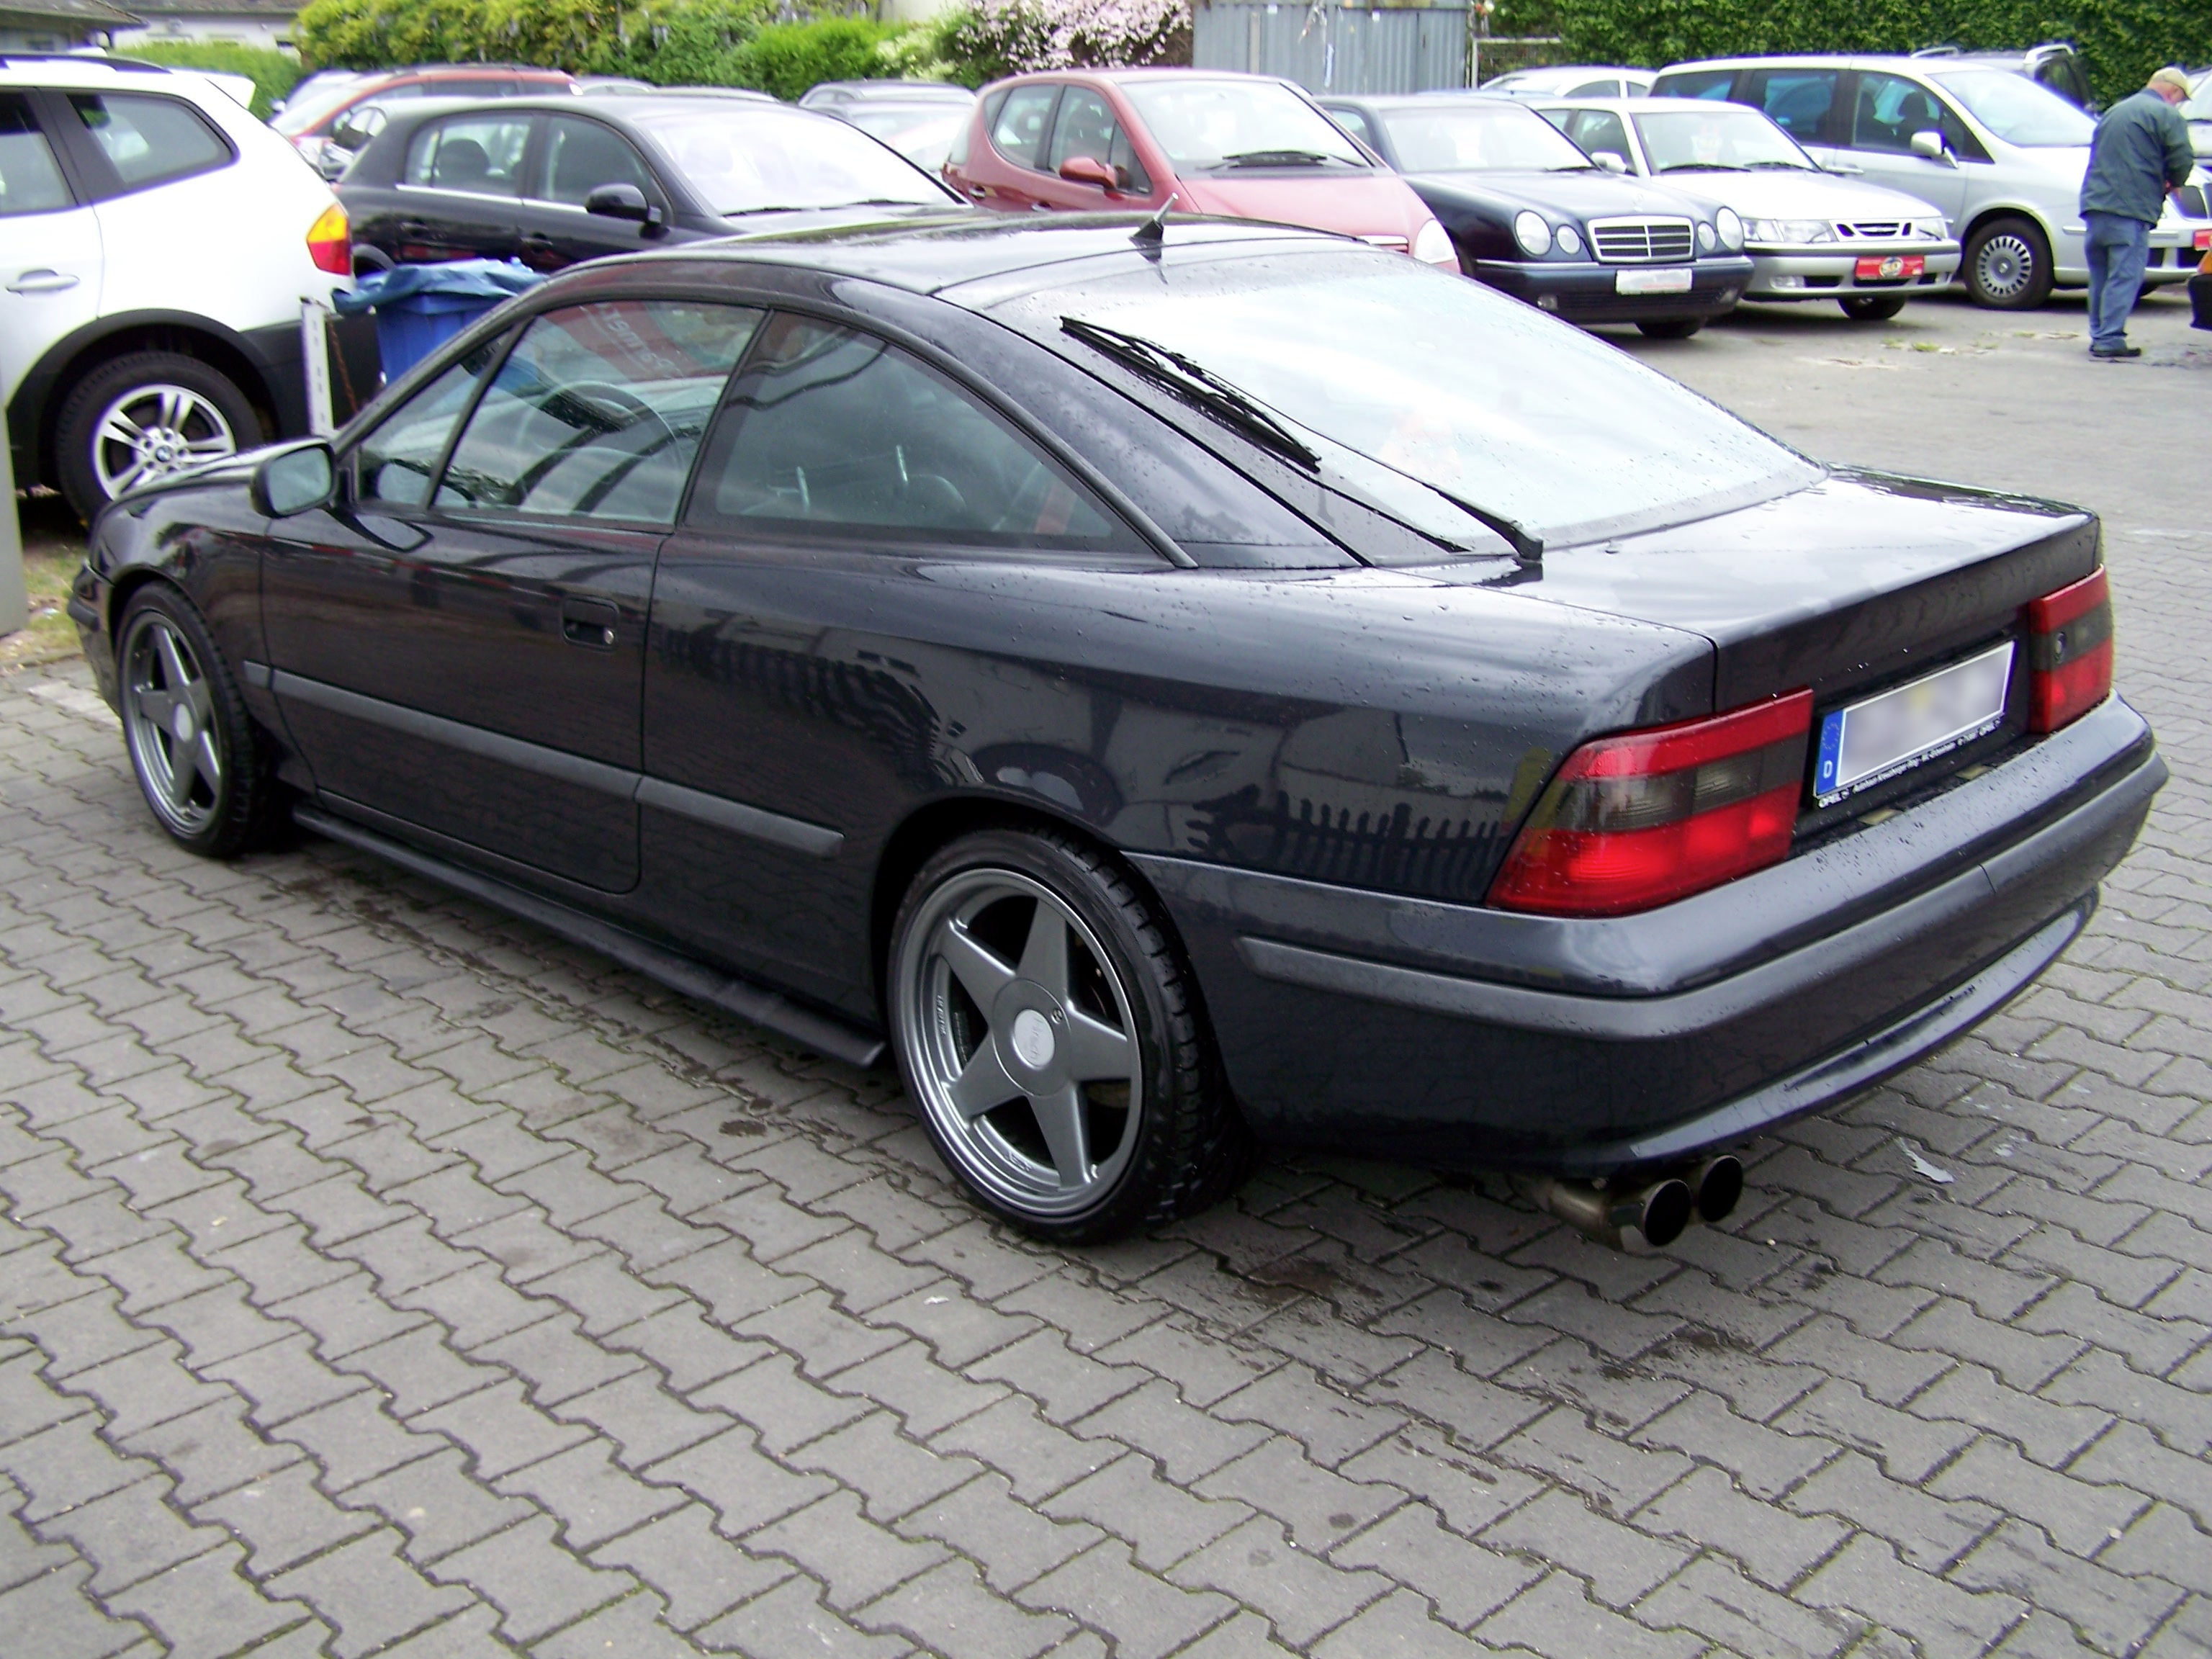 opel calibra 4 turbo - photo #43